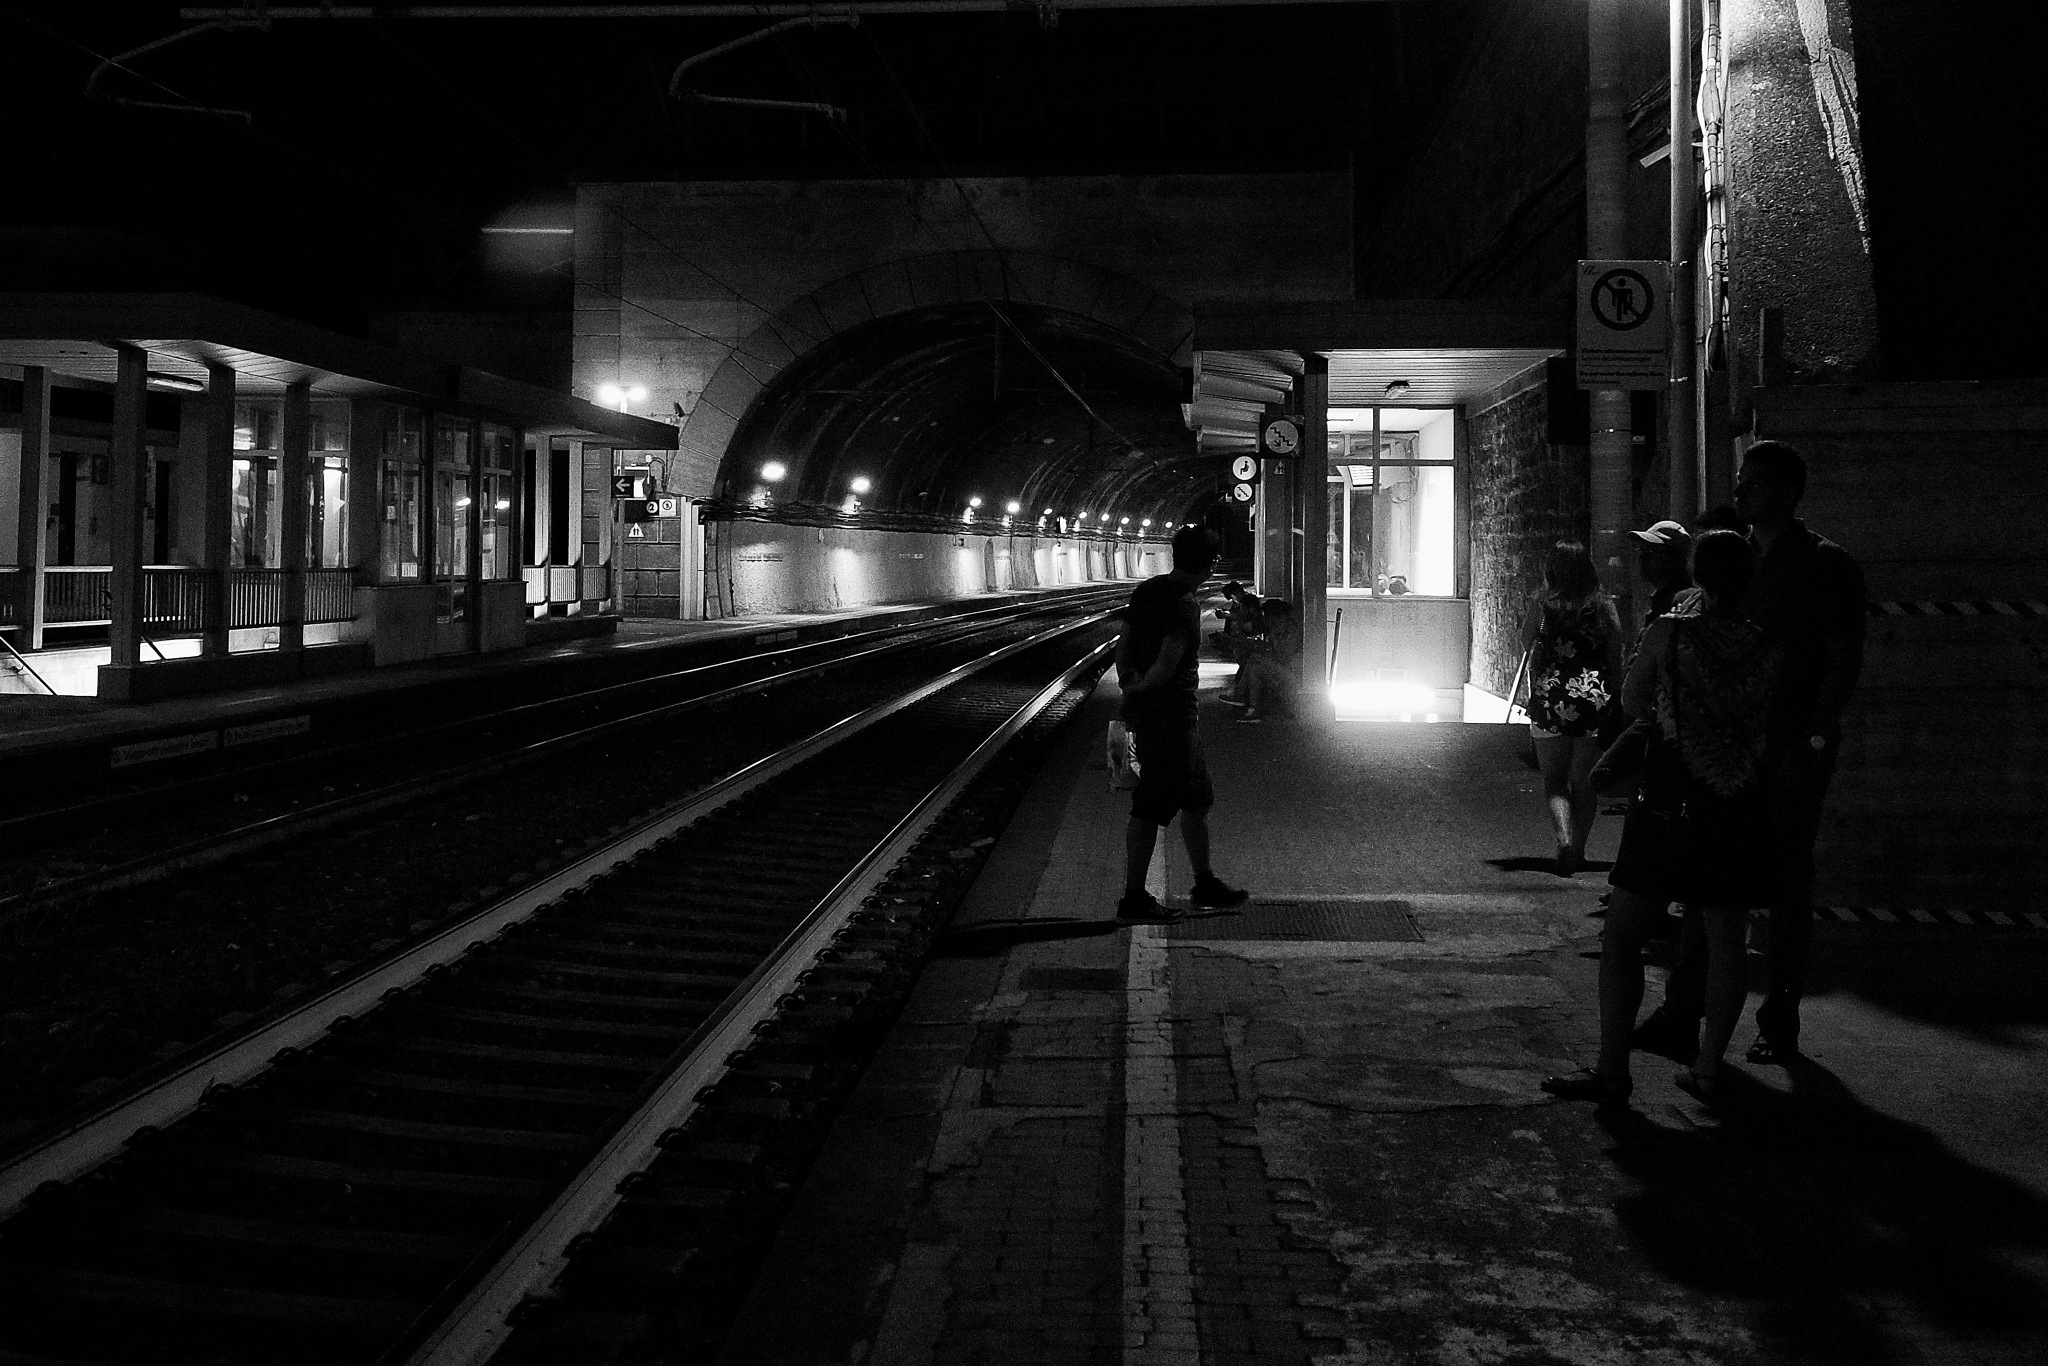 Waiting for a train by Philip S.